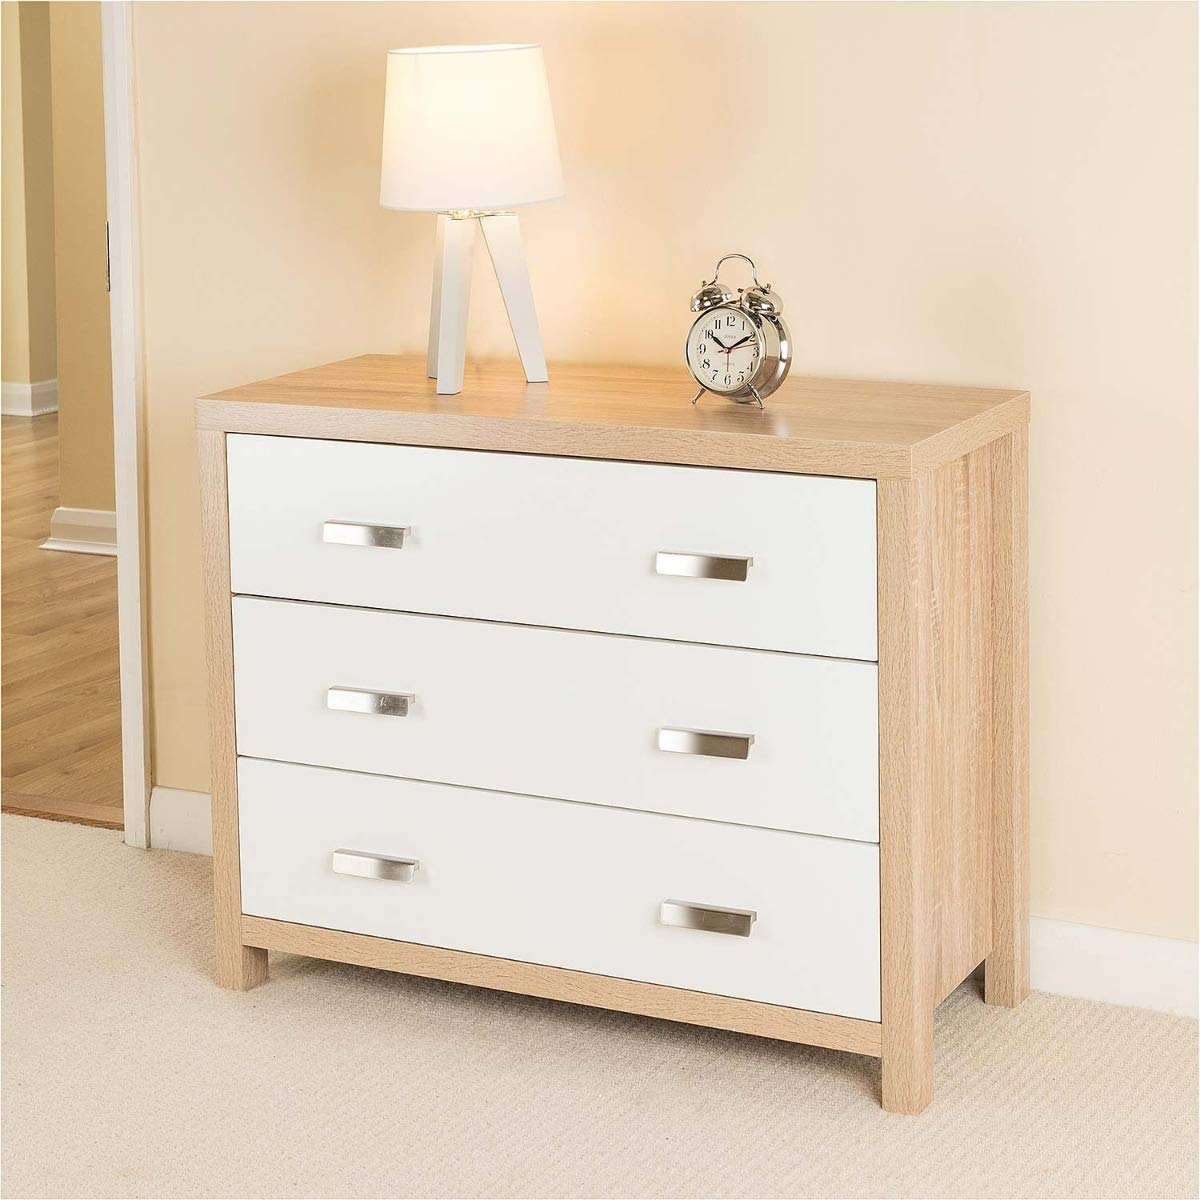 CHRISTOW Bianco Oak Effect White Wood 15 Drawer Chest of Drawers Modern  Bedroom Furniture